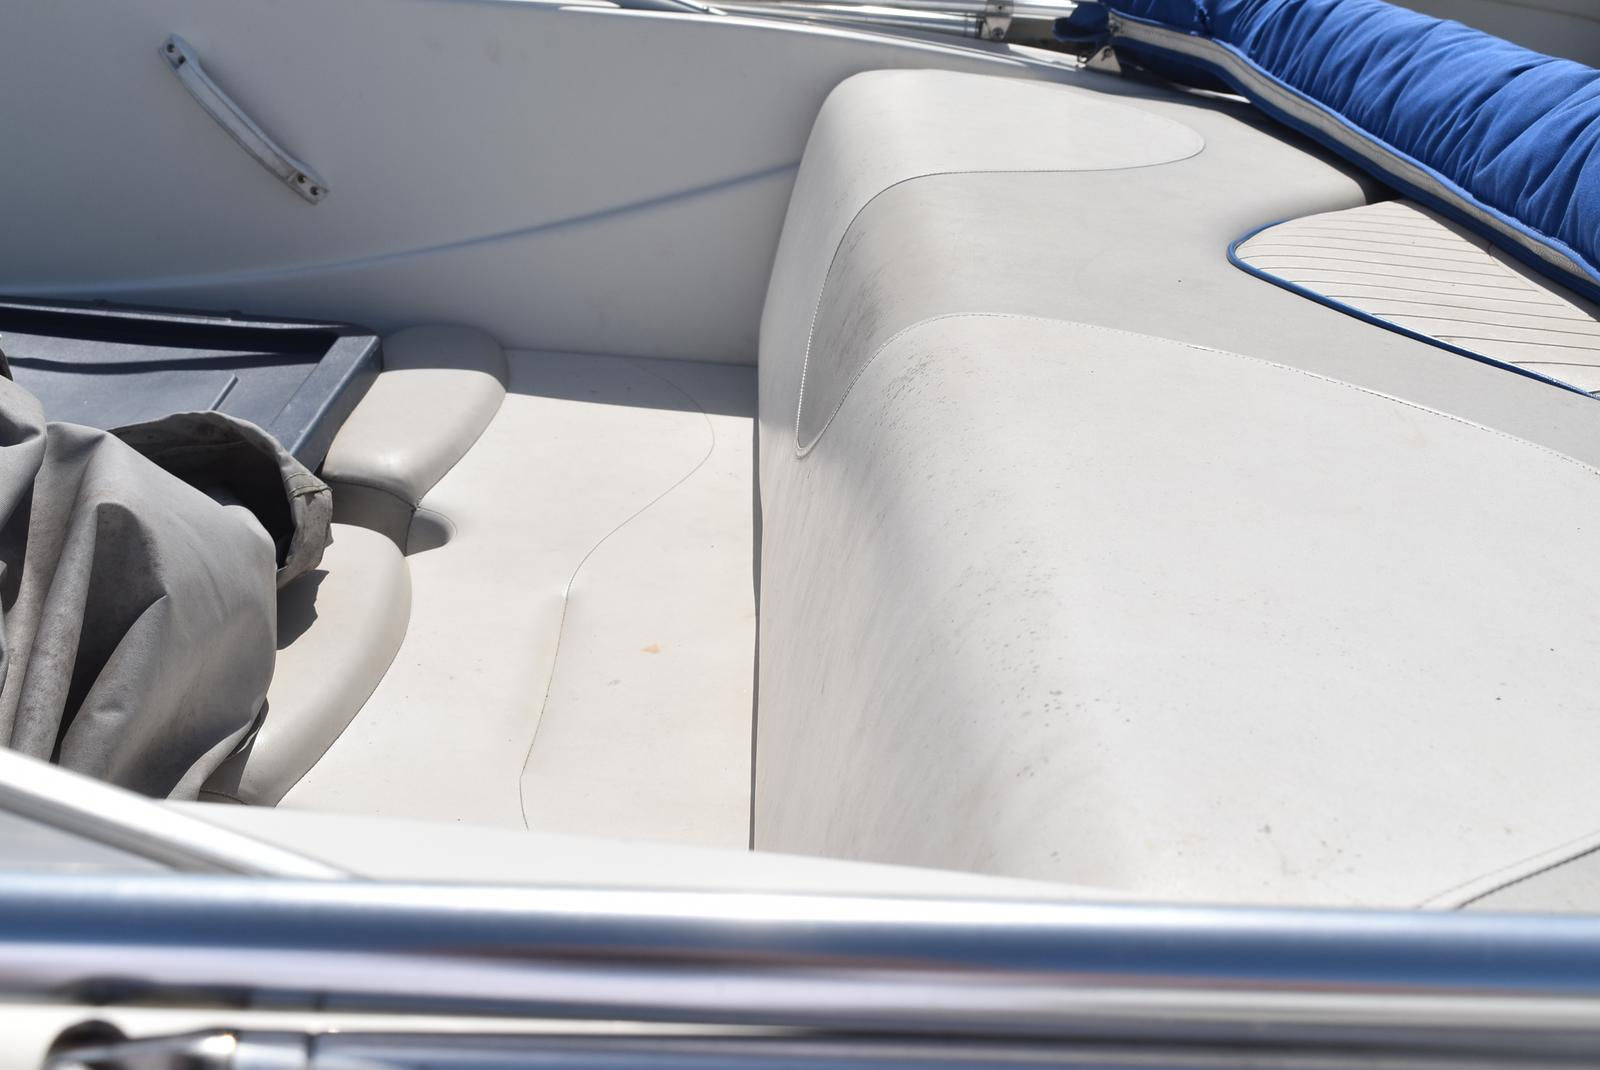 2006 Glastron boat for sale, model of the boat is MX 175 & Image # 15 of 21